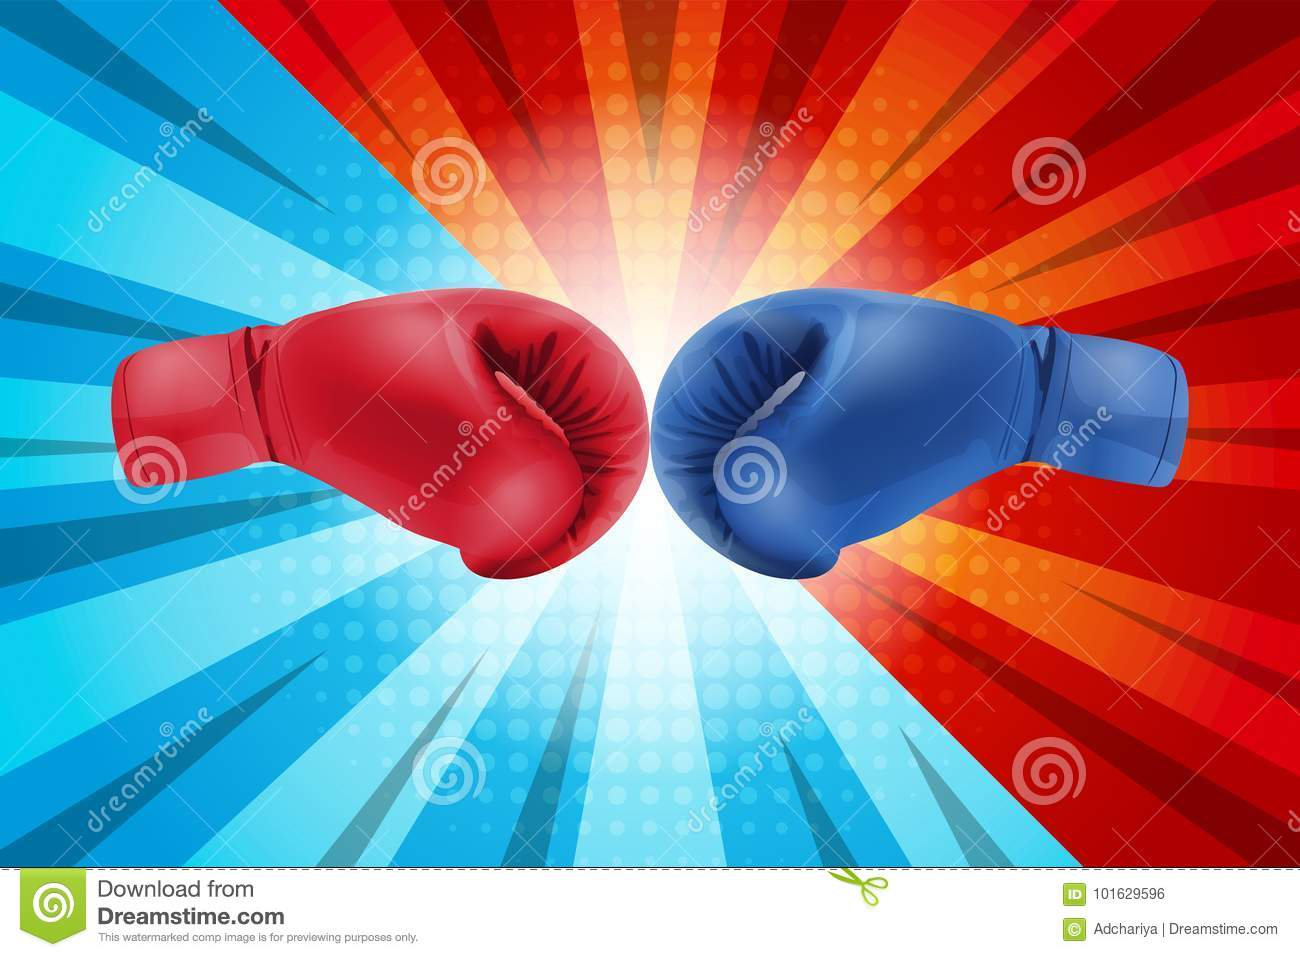 Fighting for comic background. Boxing gloves Red and Blue hitting together on comic background.